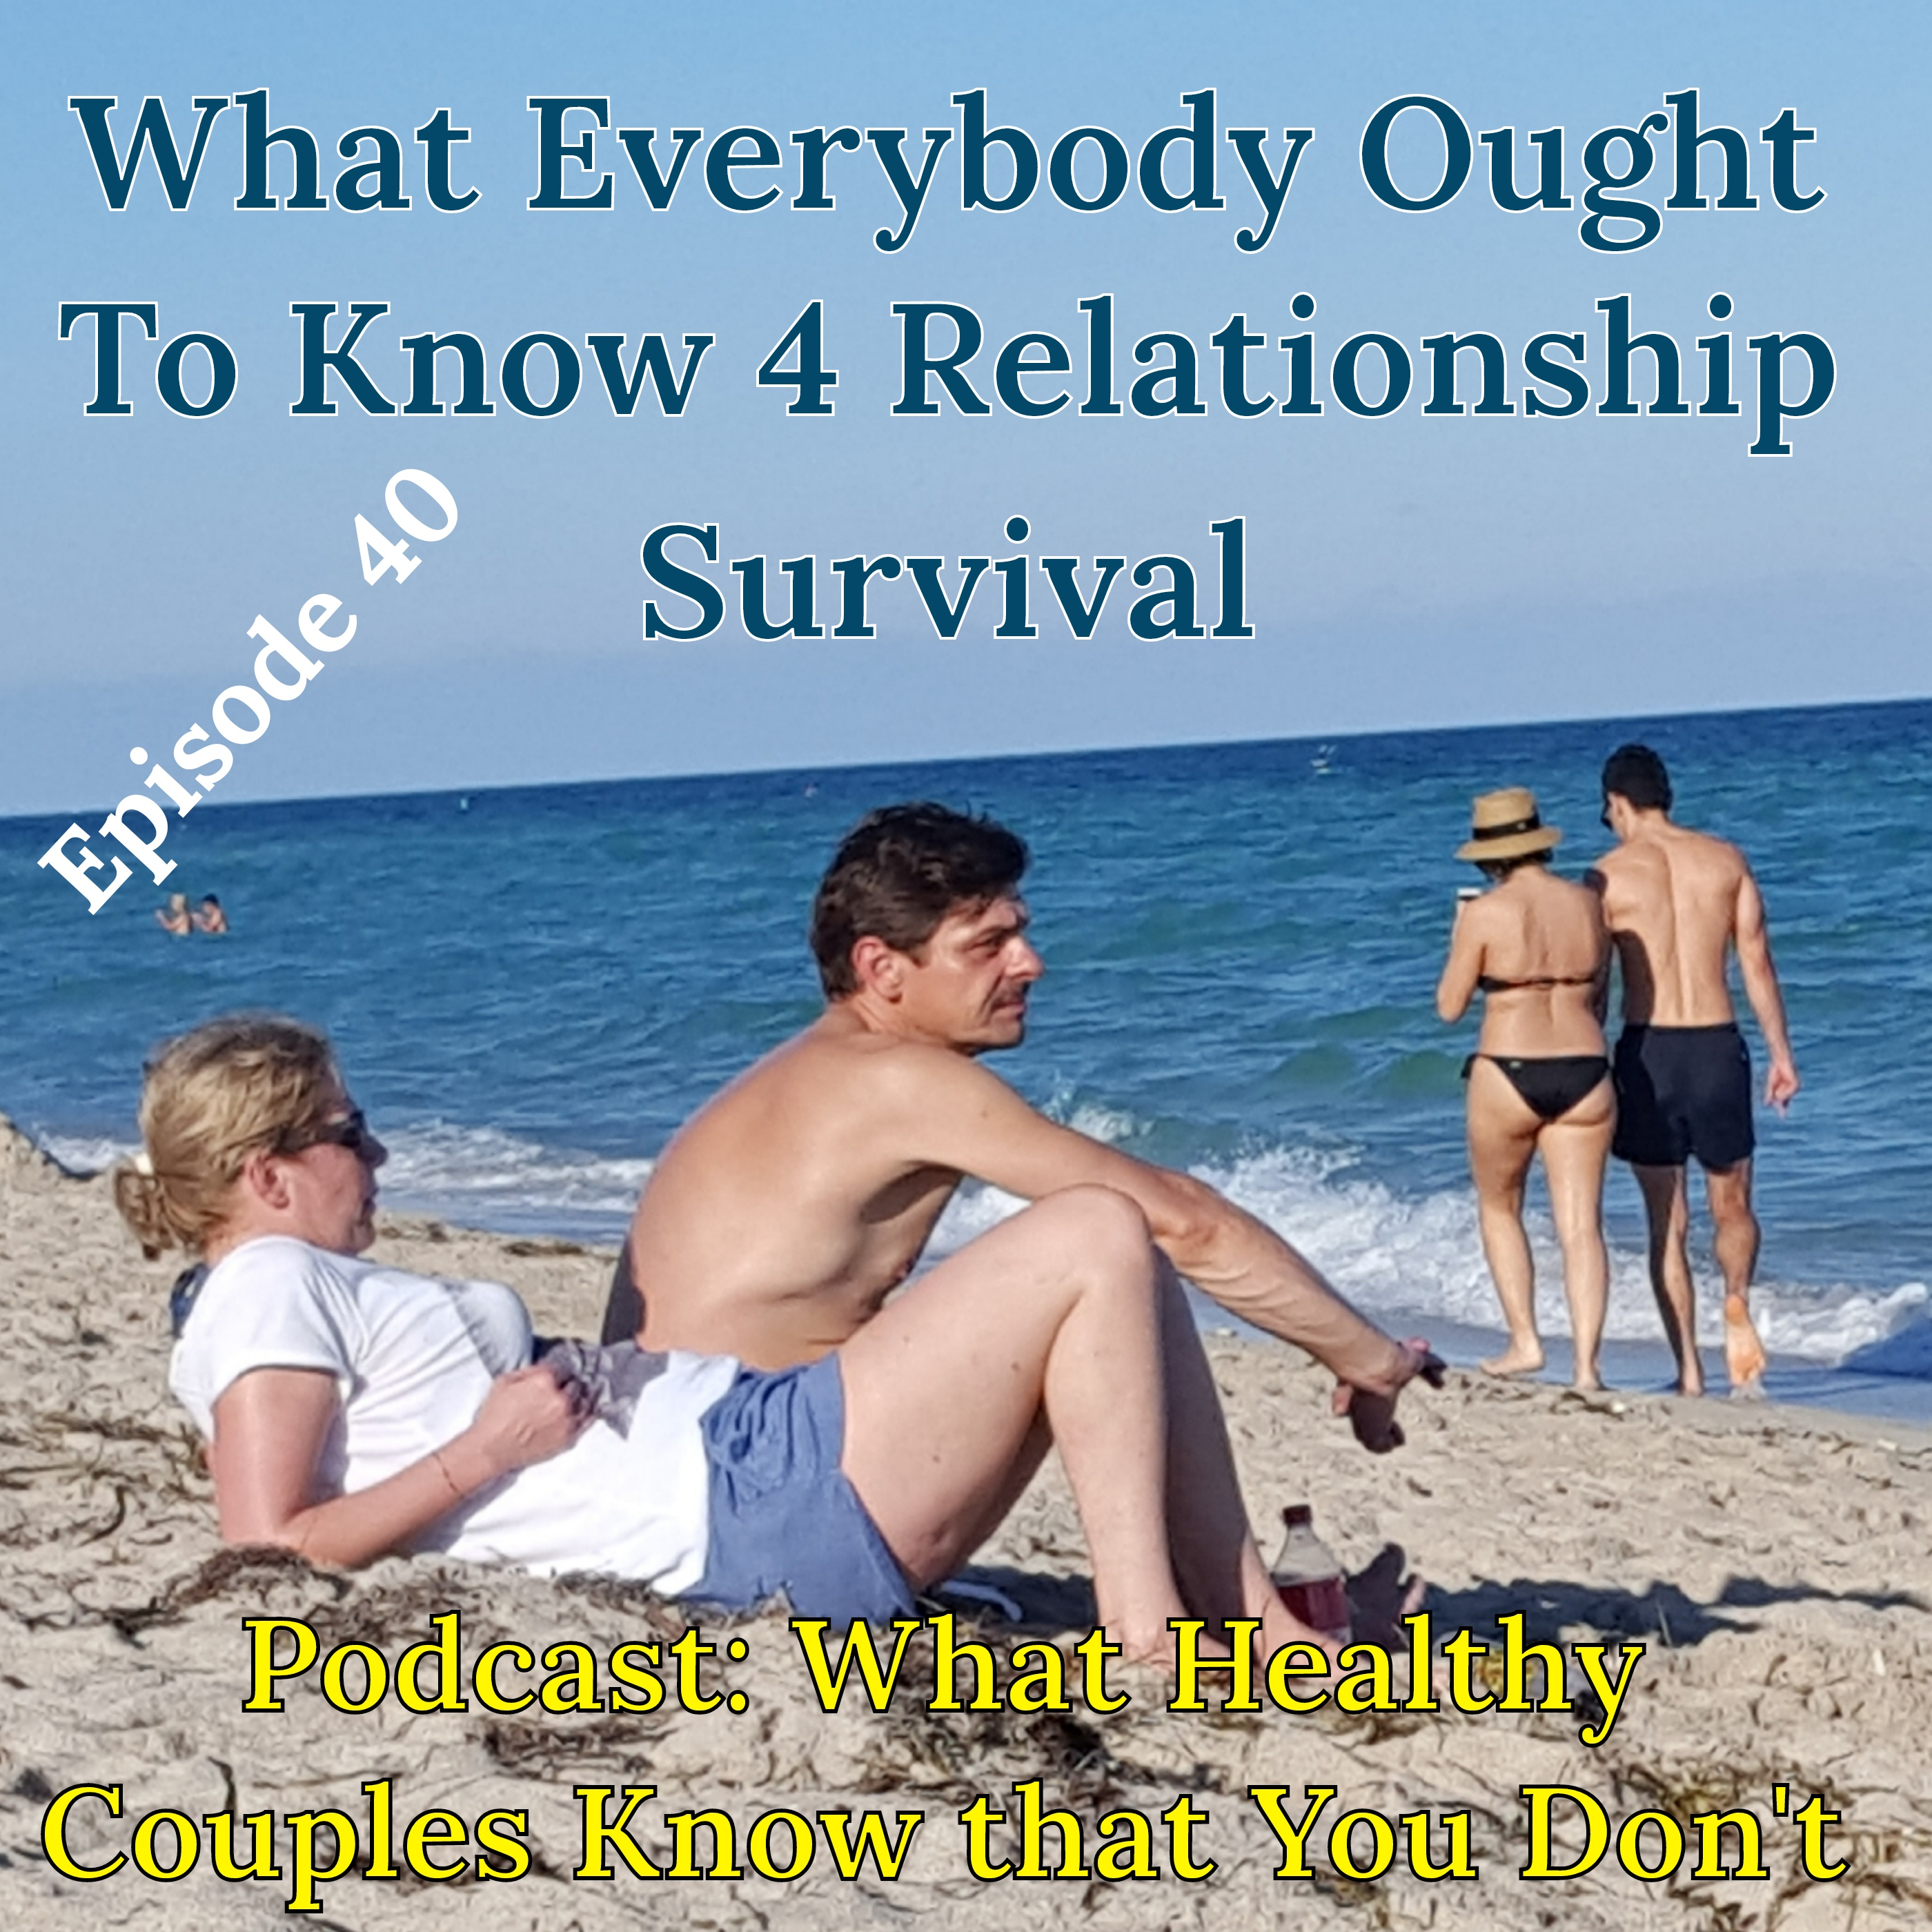 What Healthy Couples Know That You Don't - What Everybody Ought to Know for Relationship Survival Episode #40